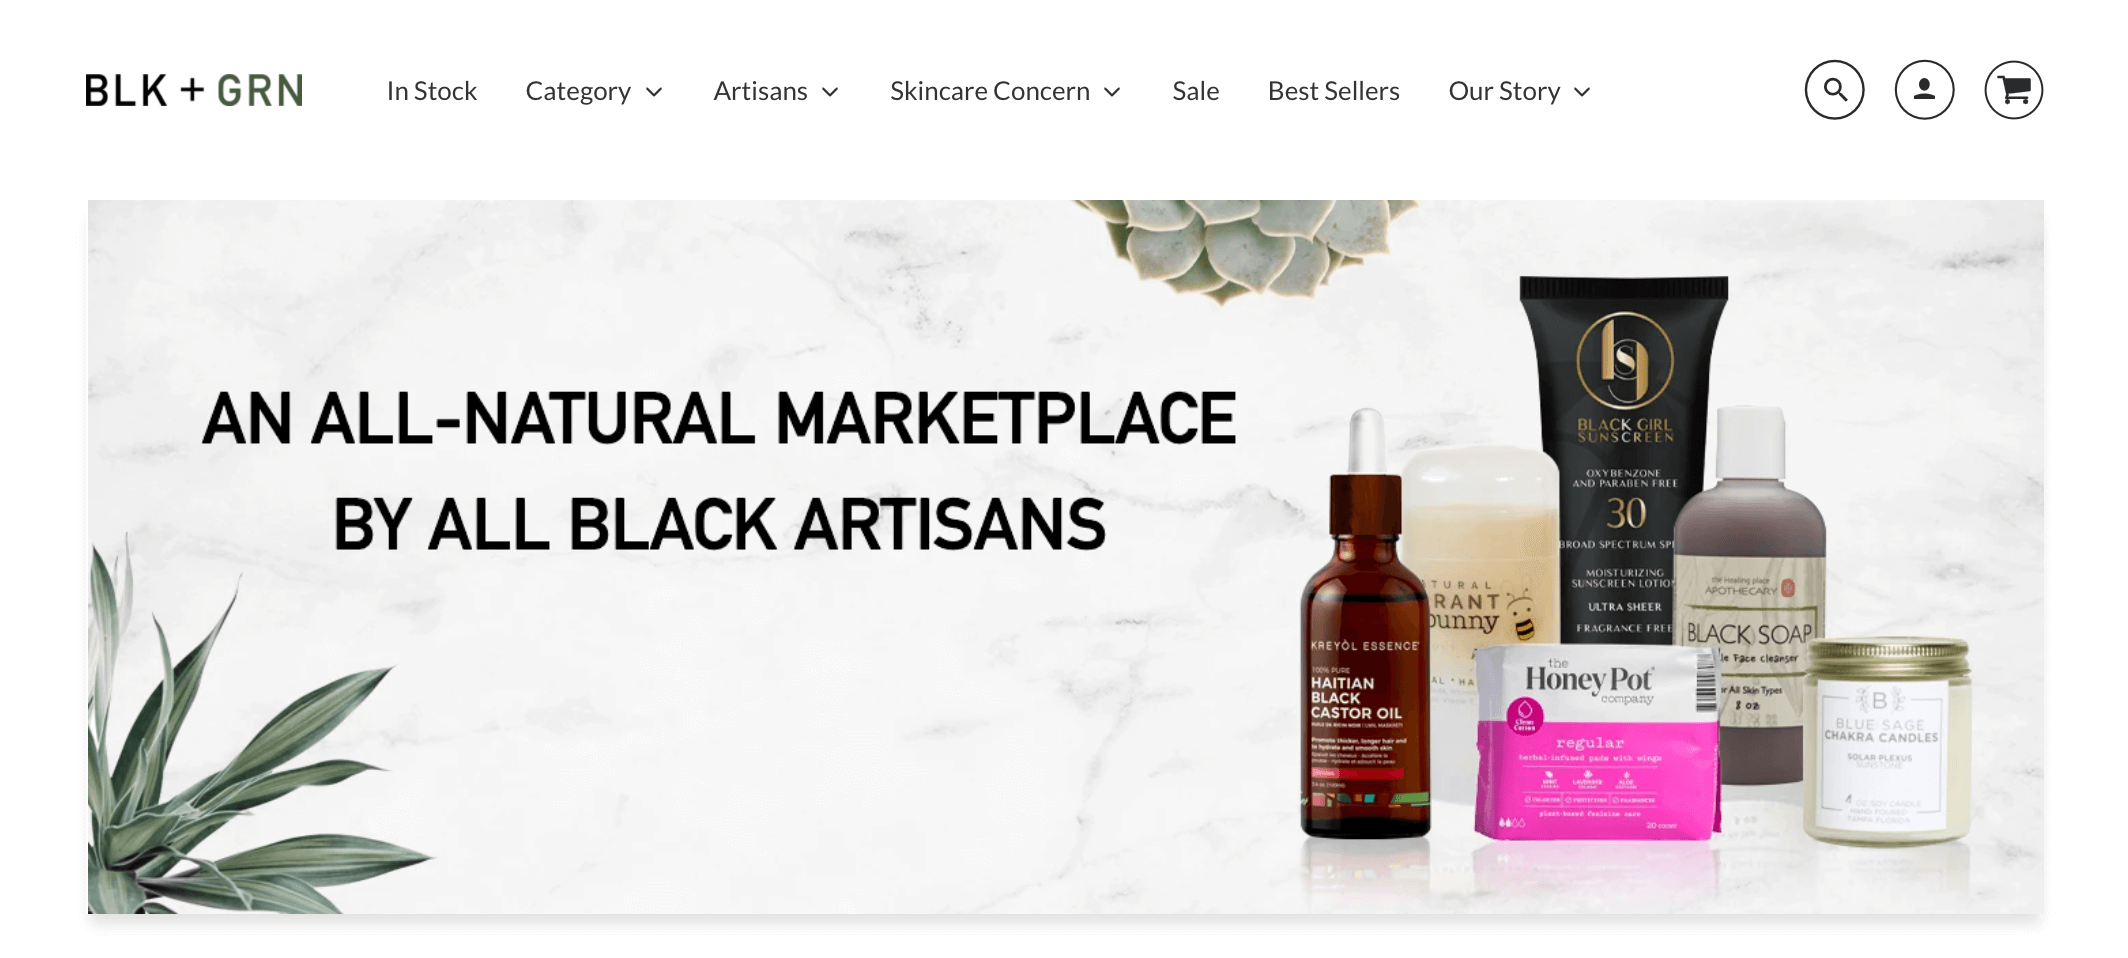 blk and grn website screenshot